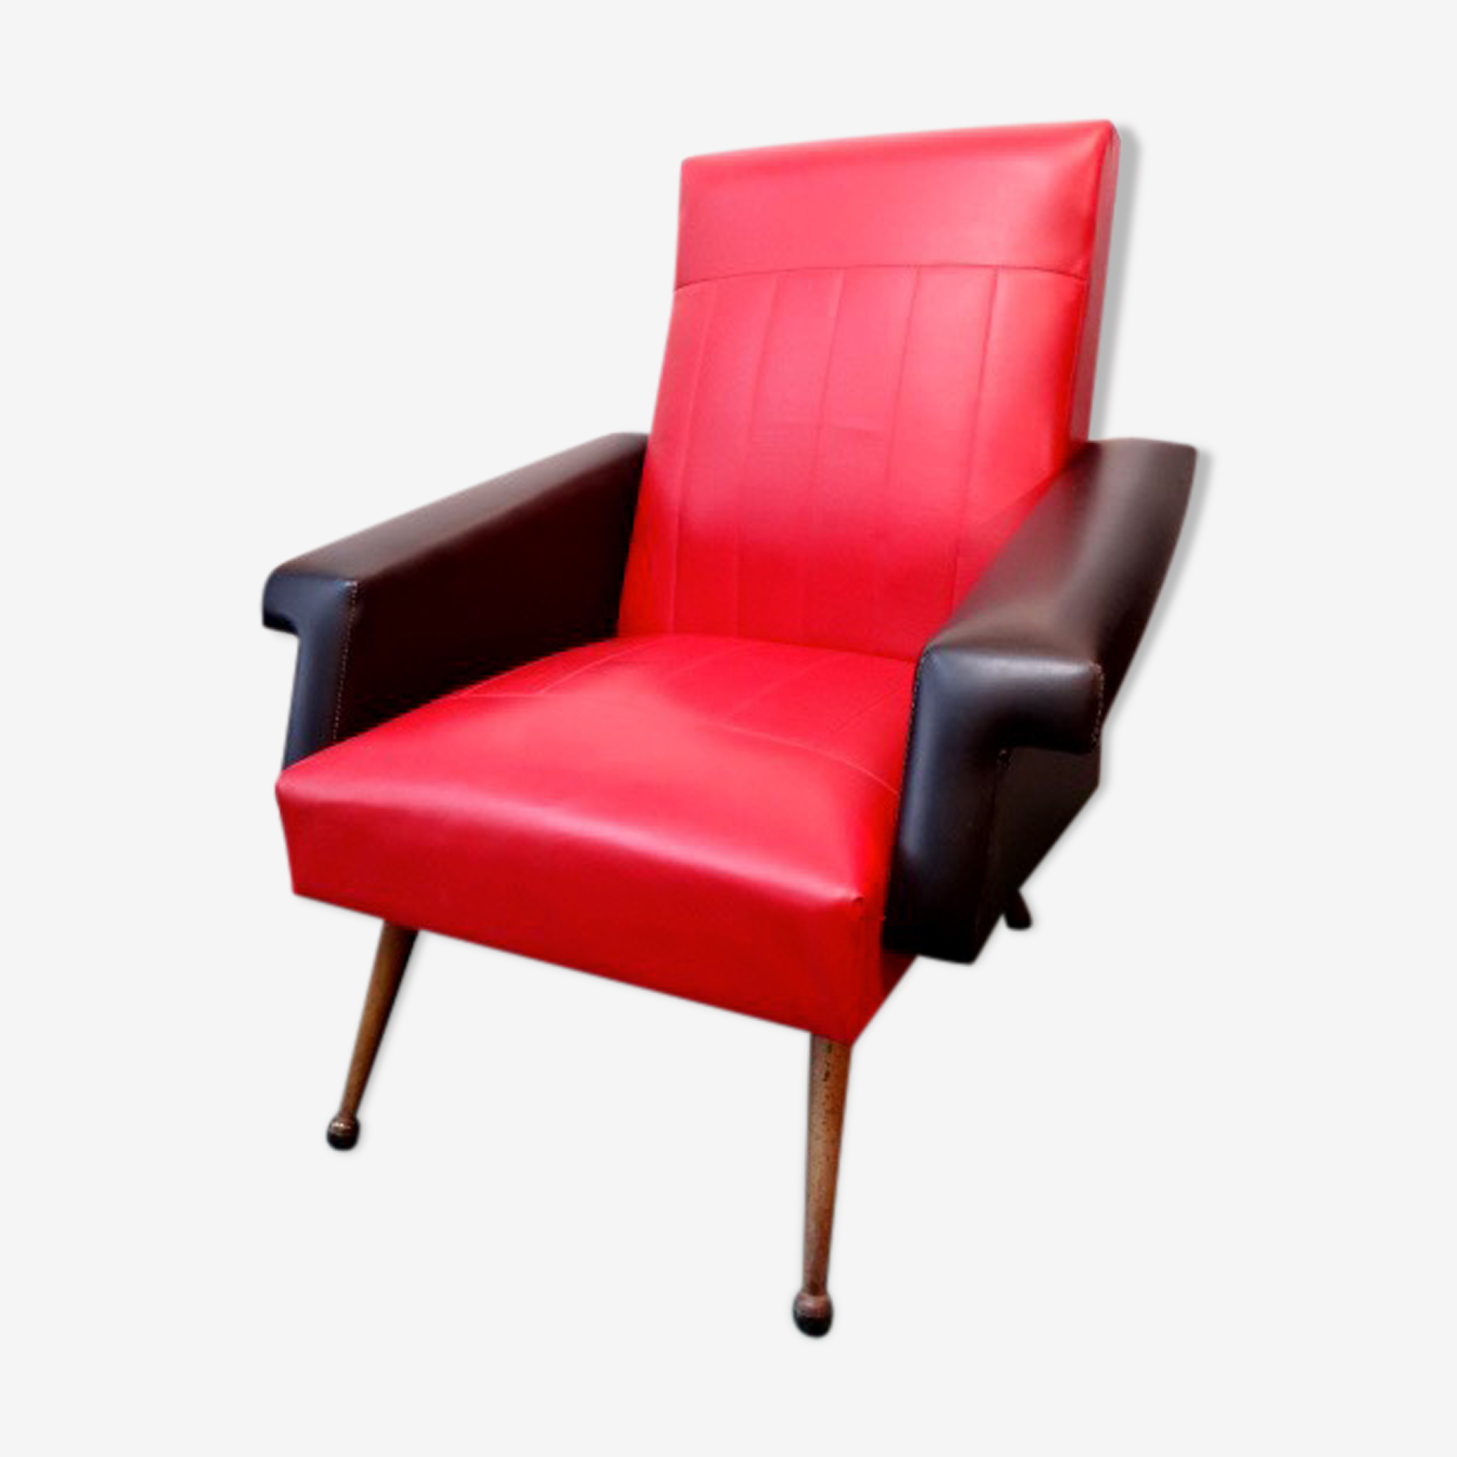 Armchair red and black